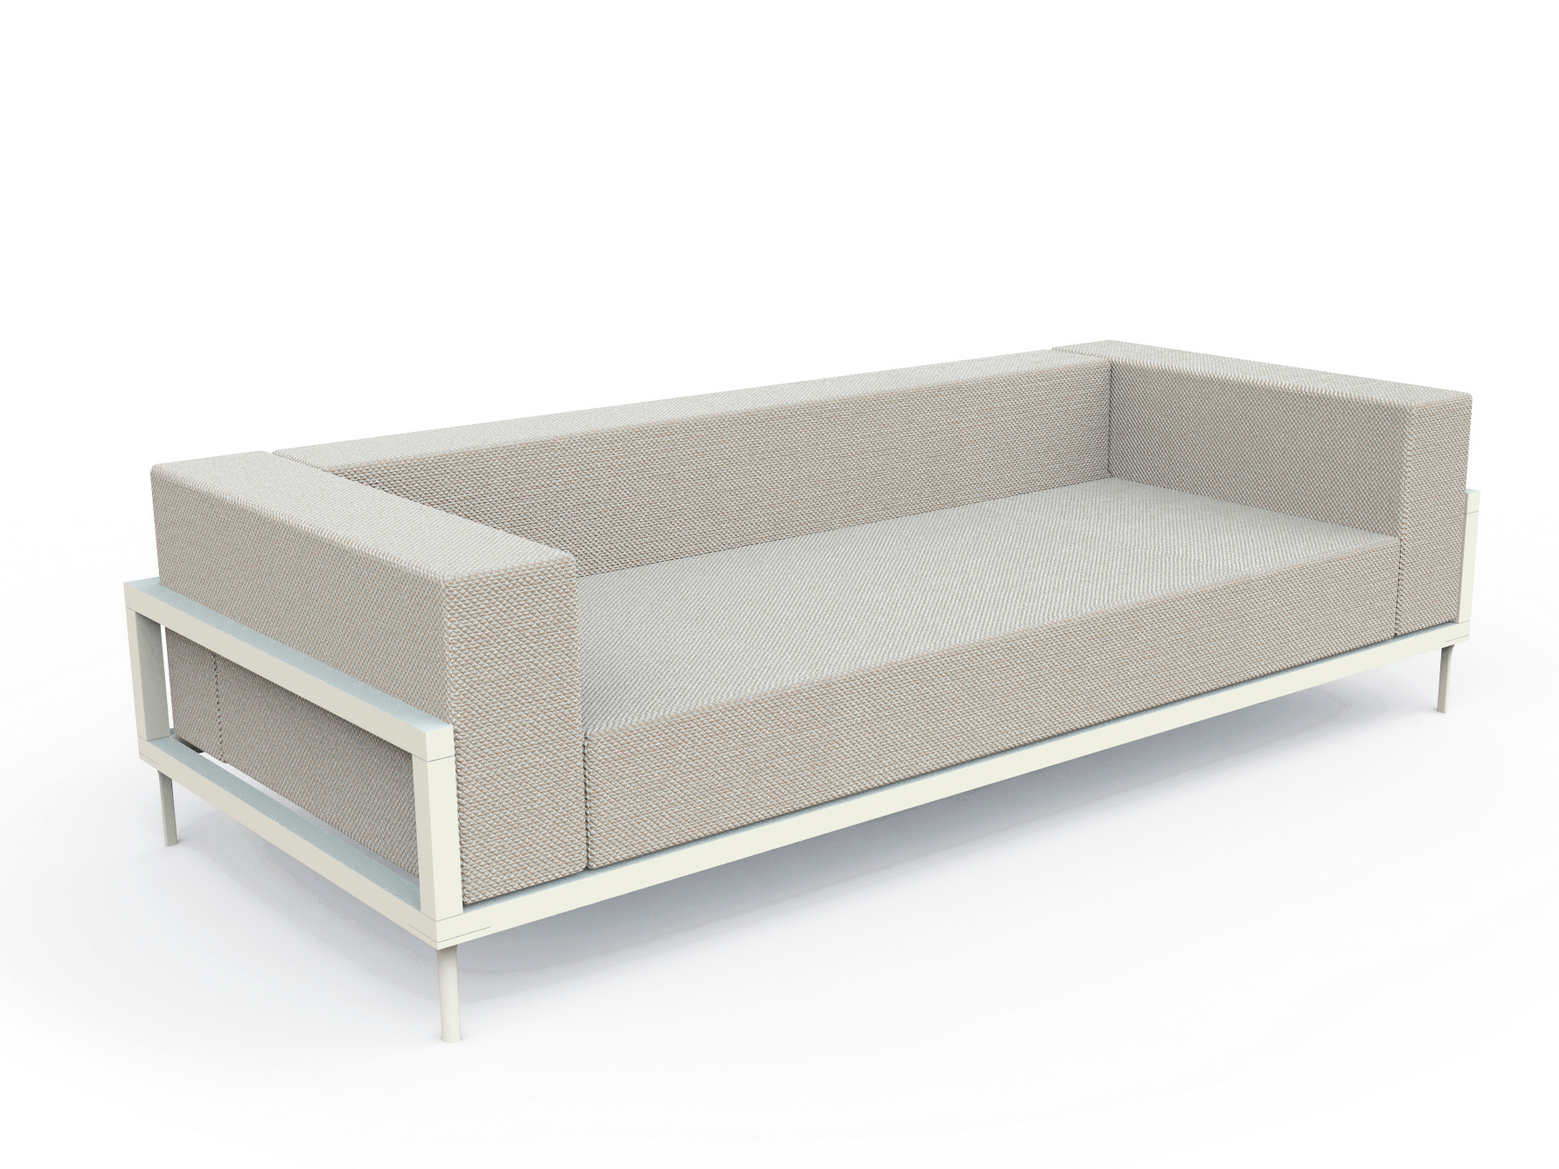 Apropos Sofa 2 Seater Option Daybed Aluminum Mod Couture